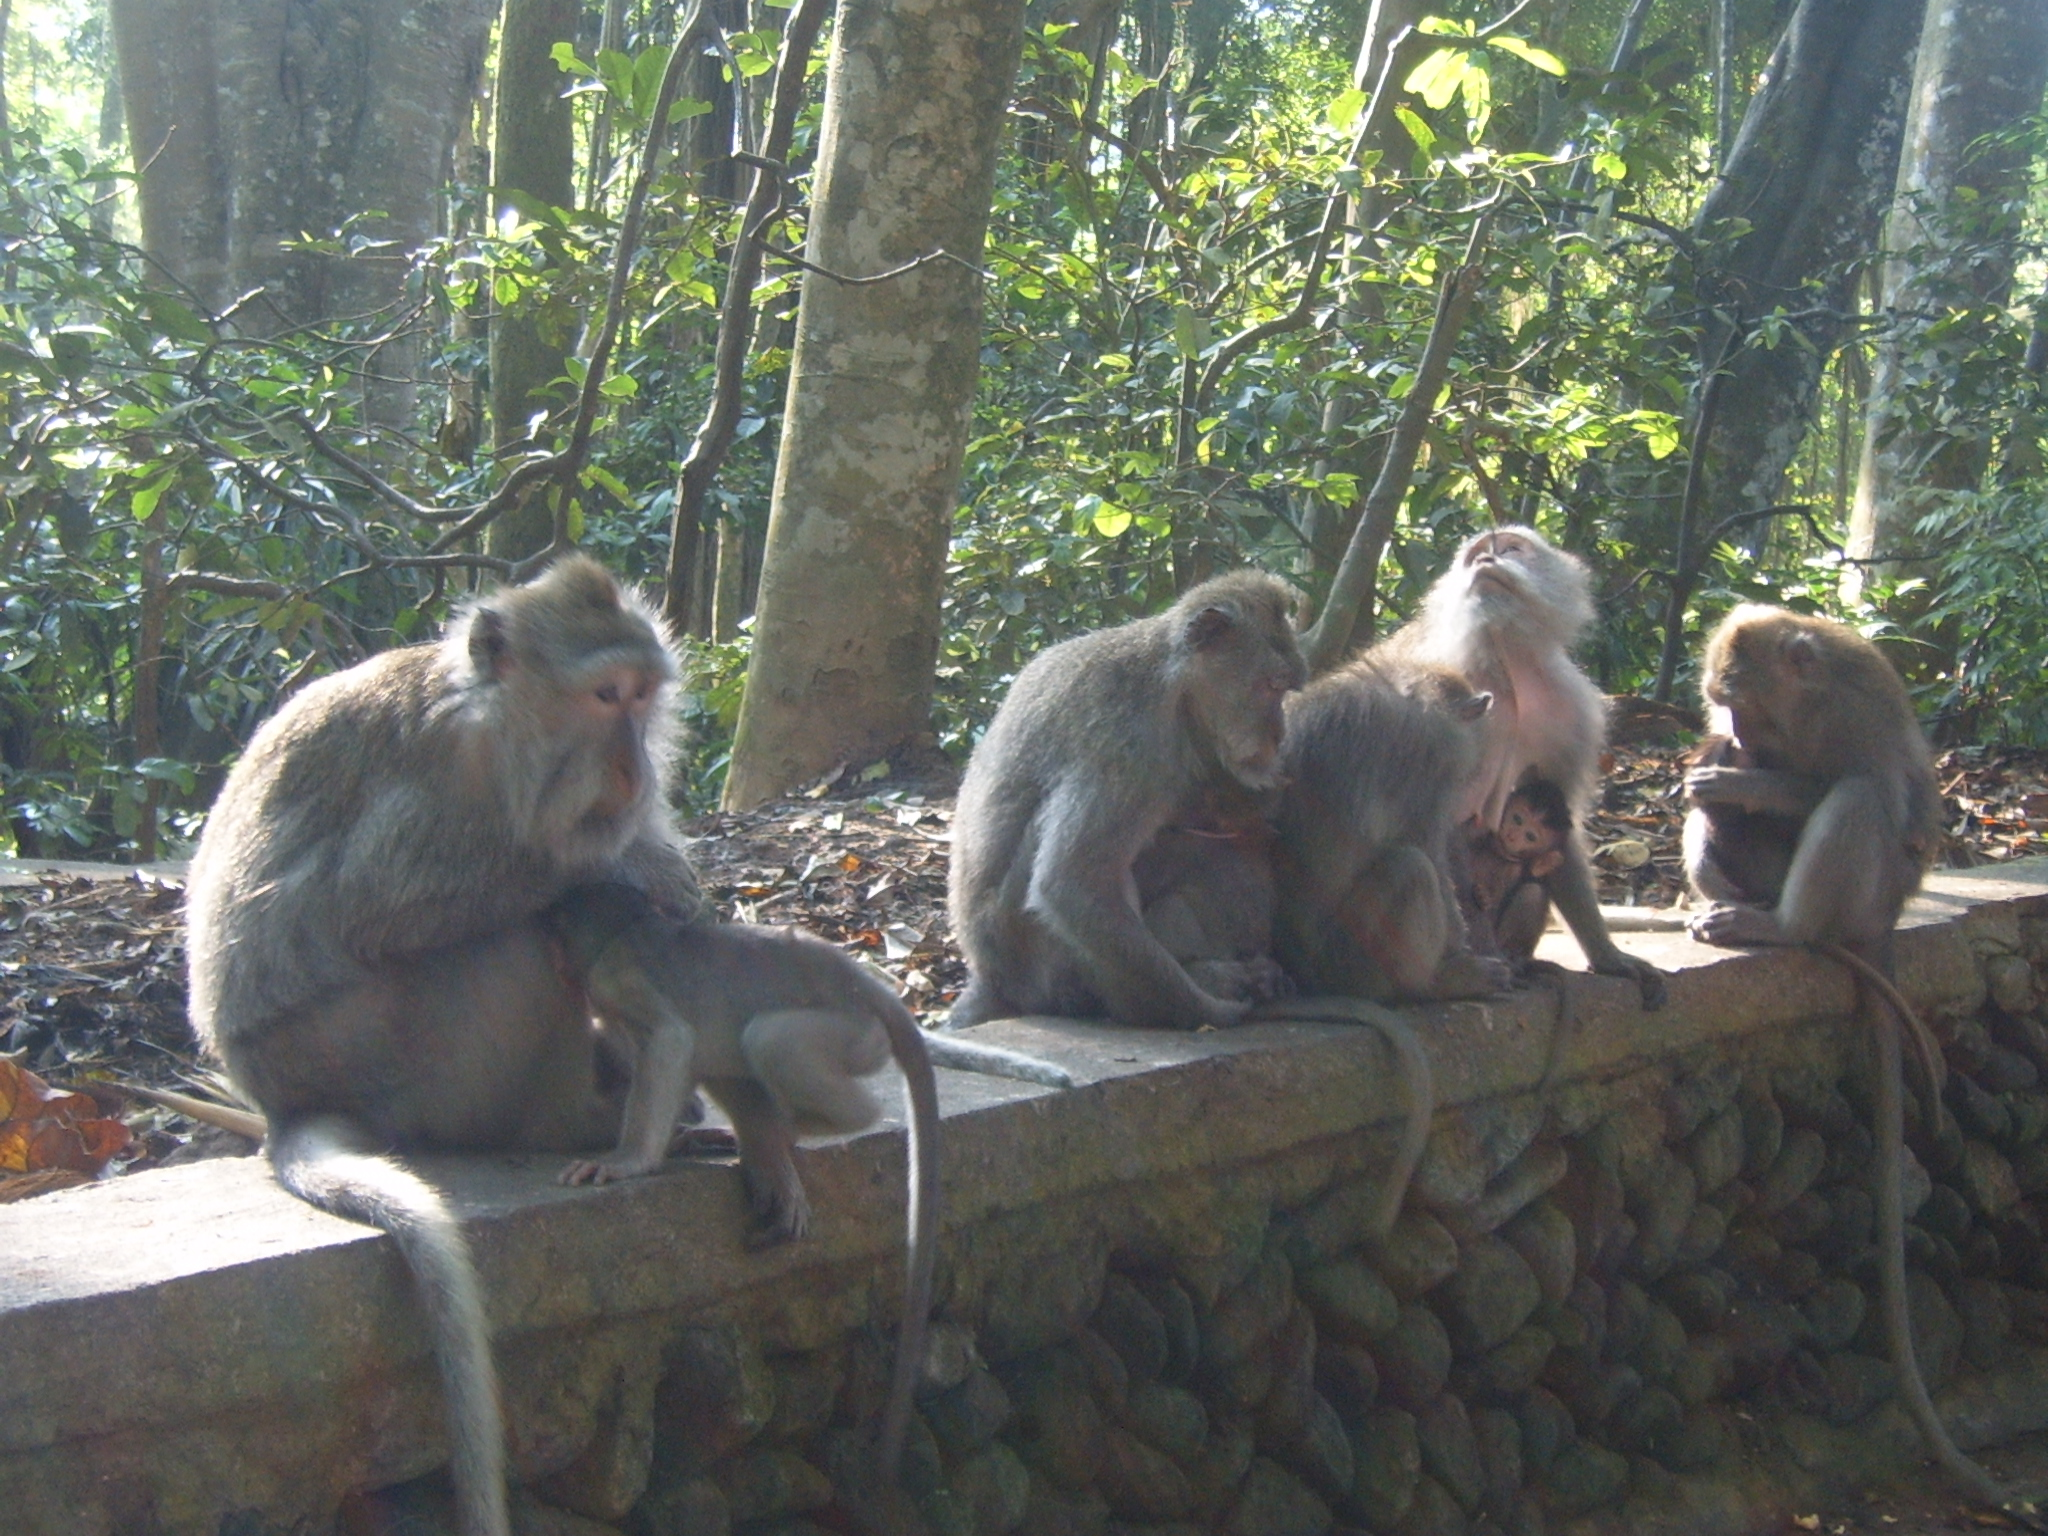 Monkeys in Monkey Forest - Bali